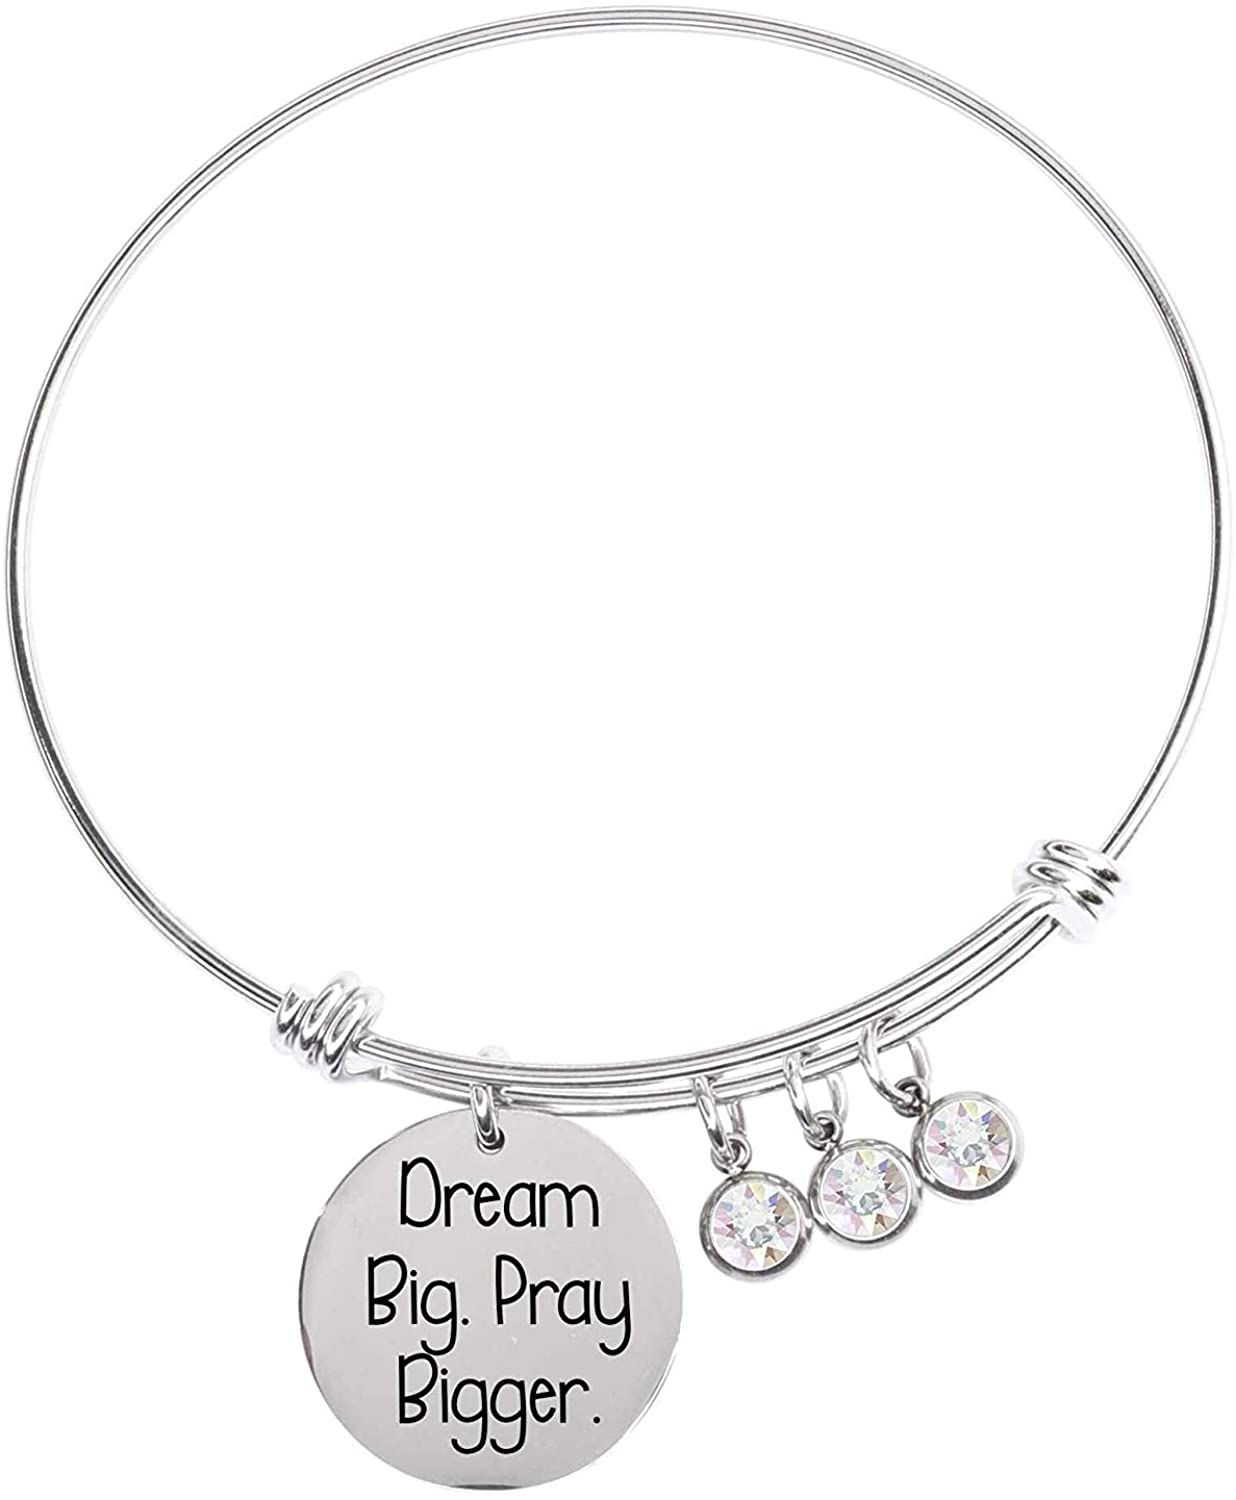 Pink Box Expandable Multi Charm Inspirational Bangles Silver - Dream Big Pray Bigger